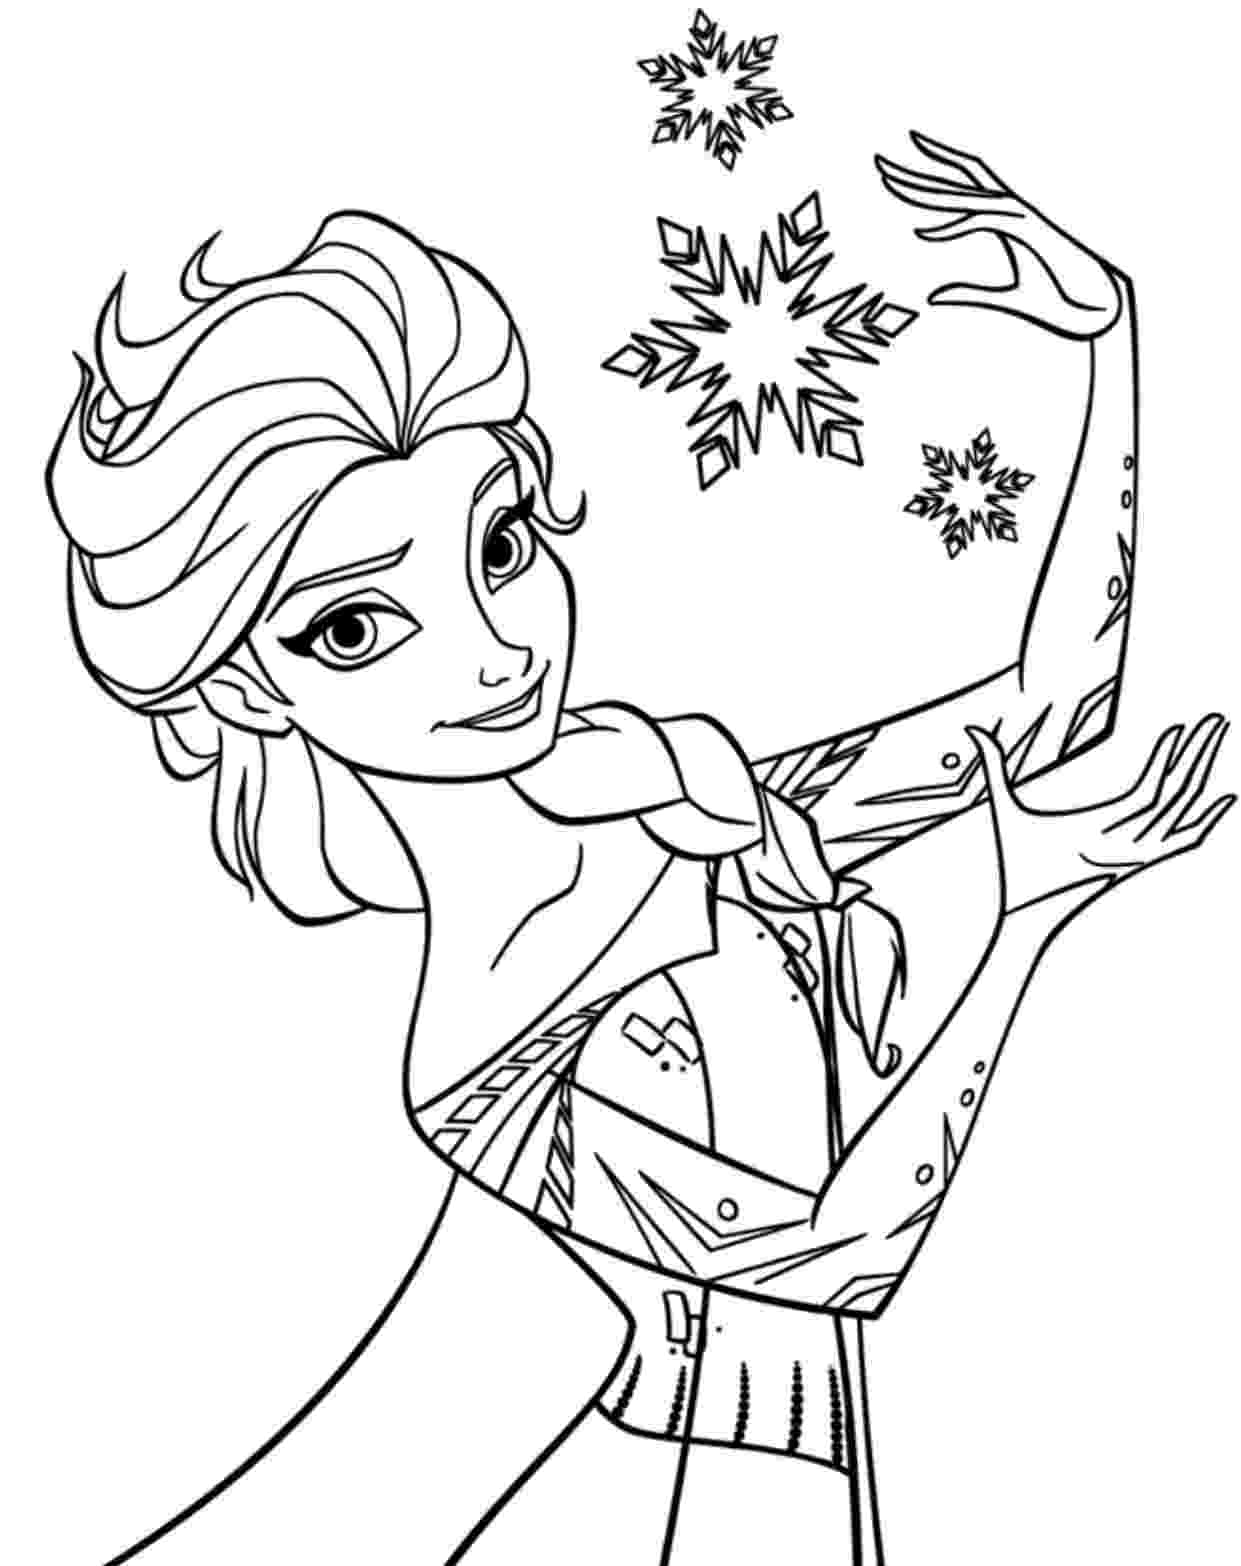 free printable coloring pages for children free printable care bear coloring pages for kids free pages printable for coloring children